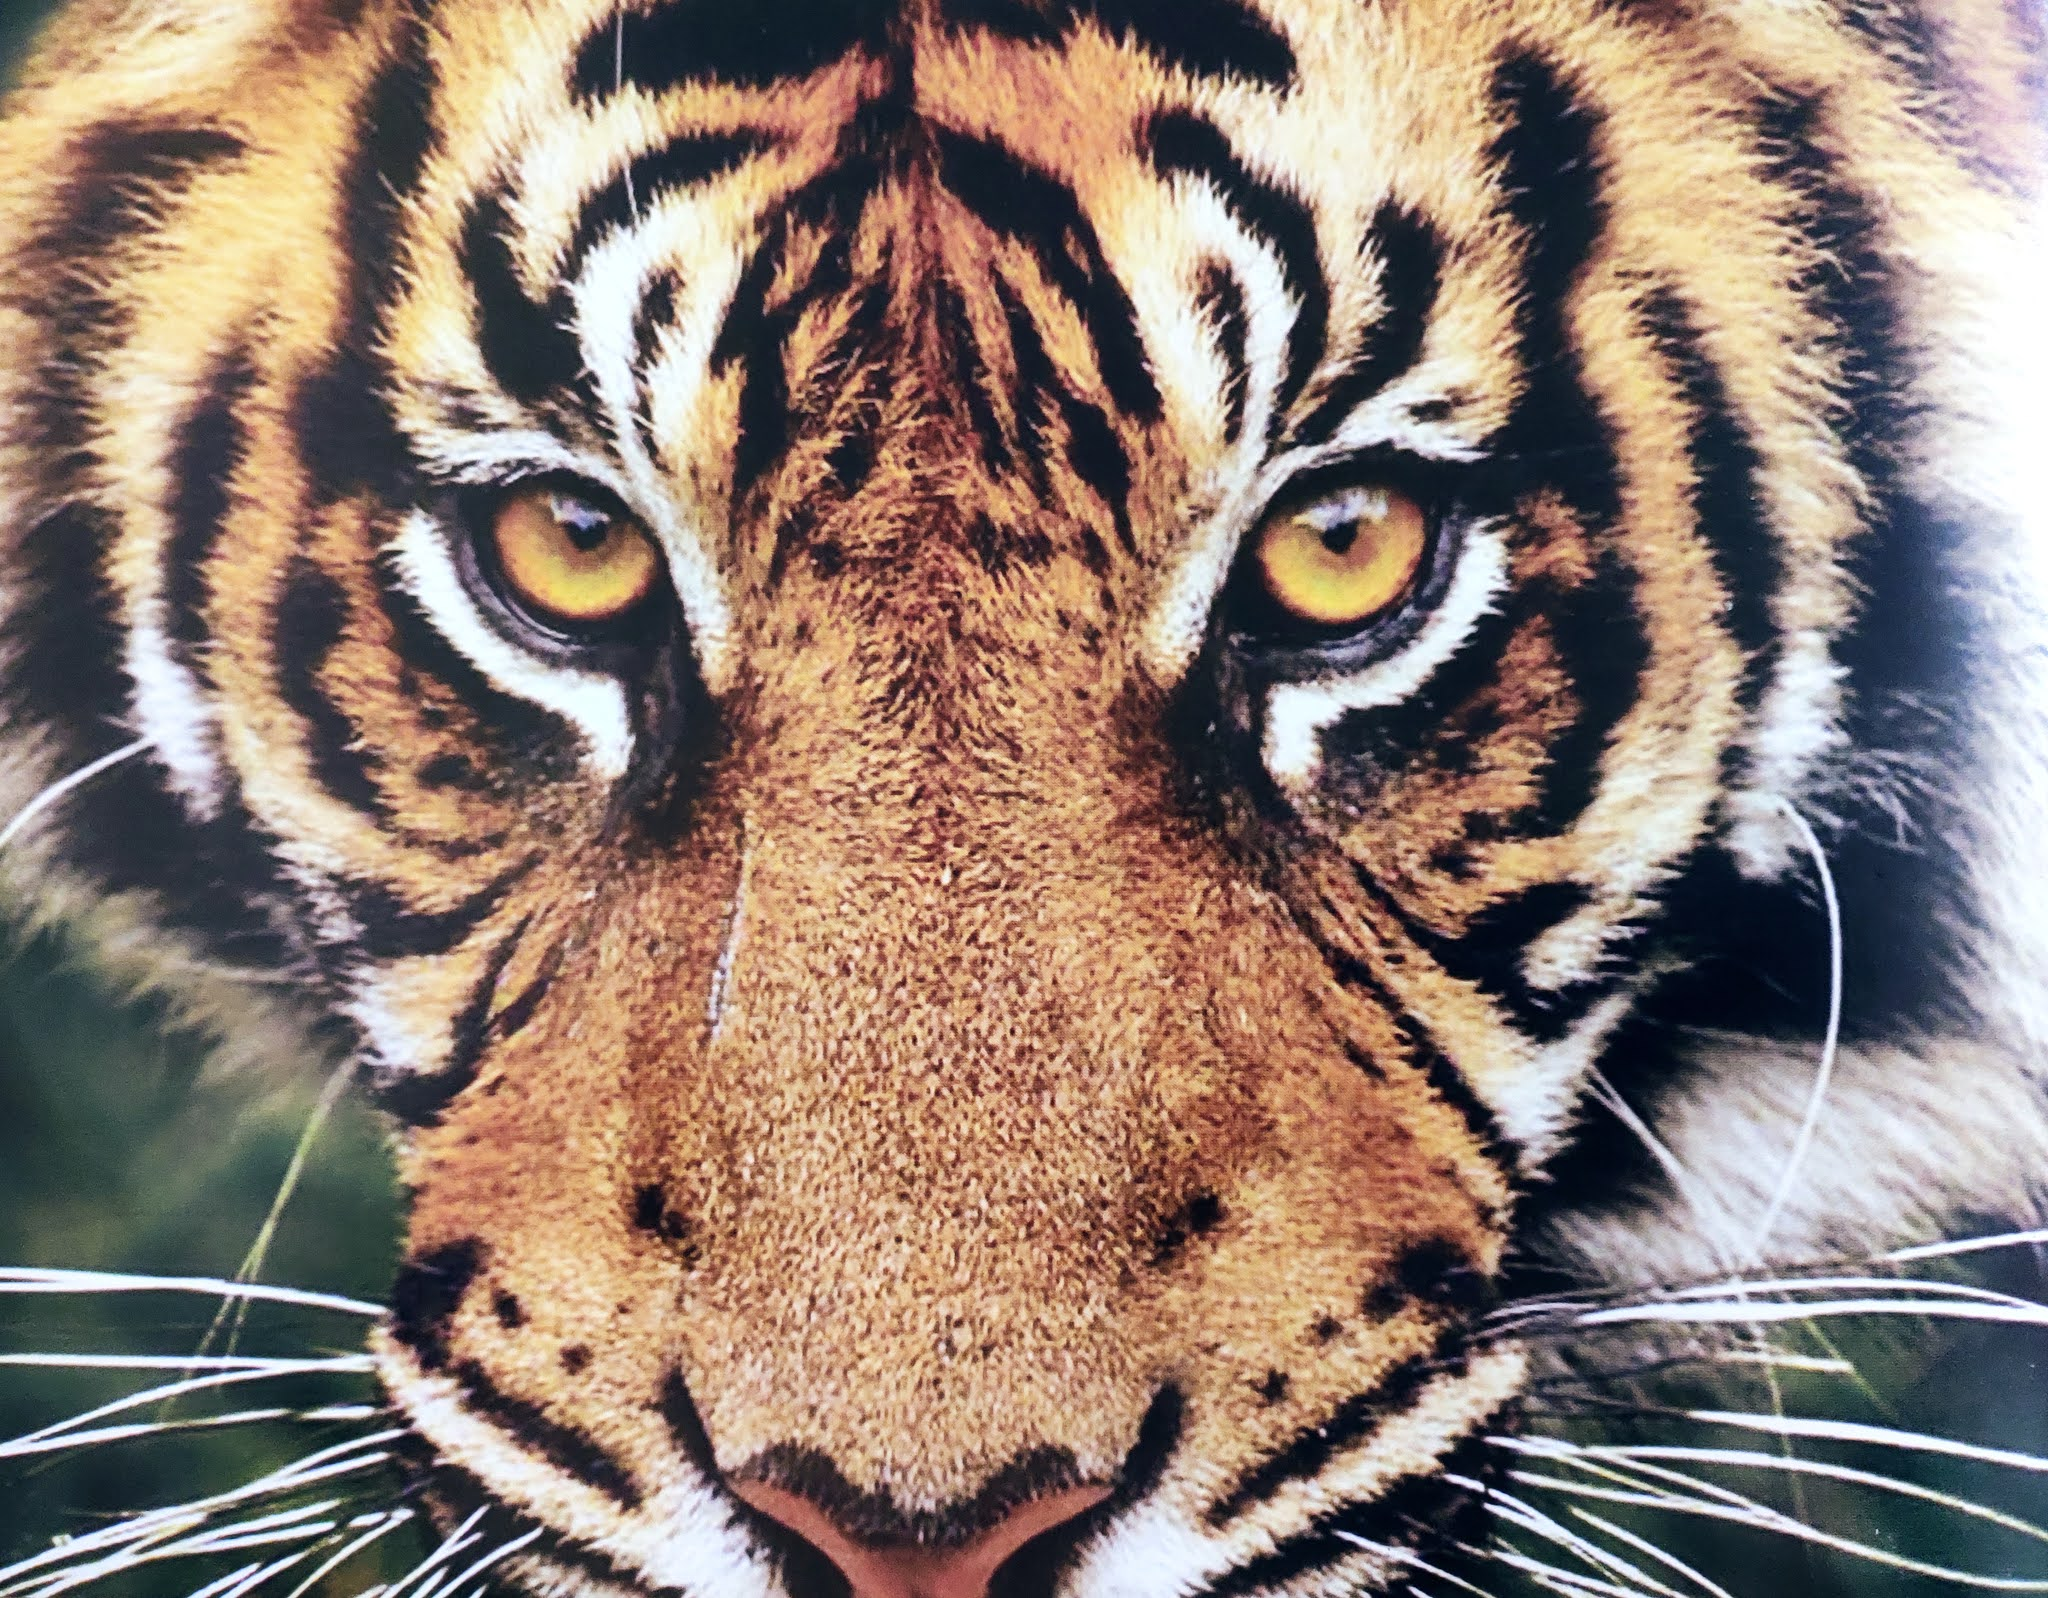 Image contains a tiger